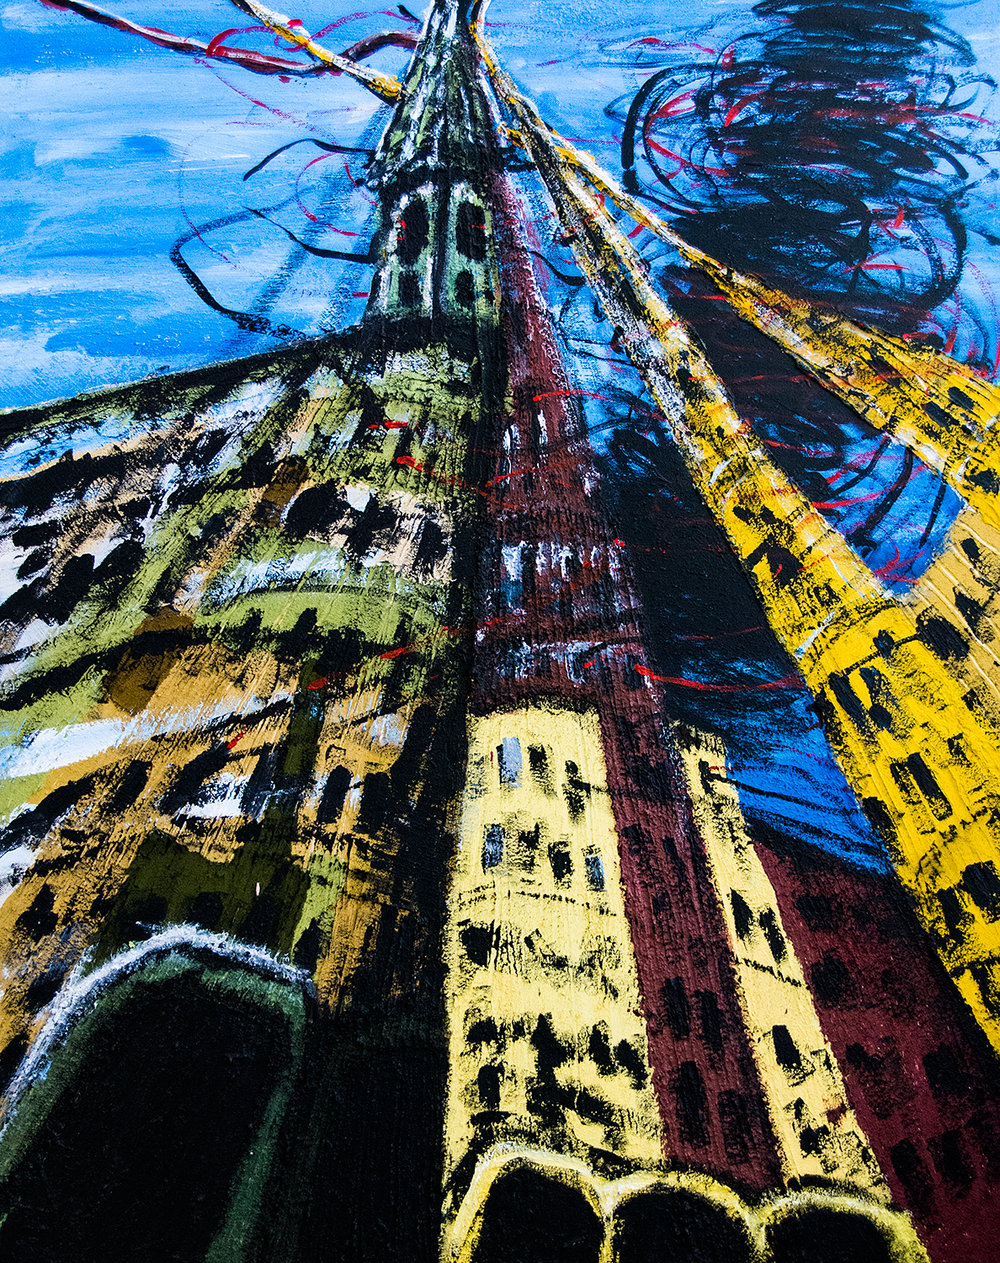 The Valencia series: Towers that Reach up to the Sky, acrylic on canvas, 92x73cm